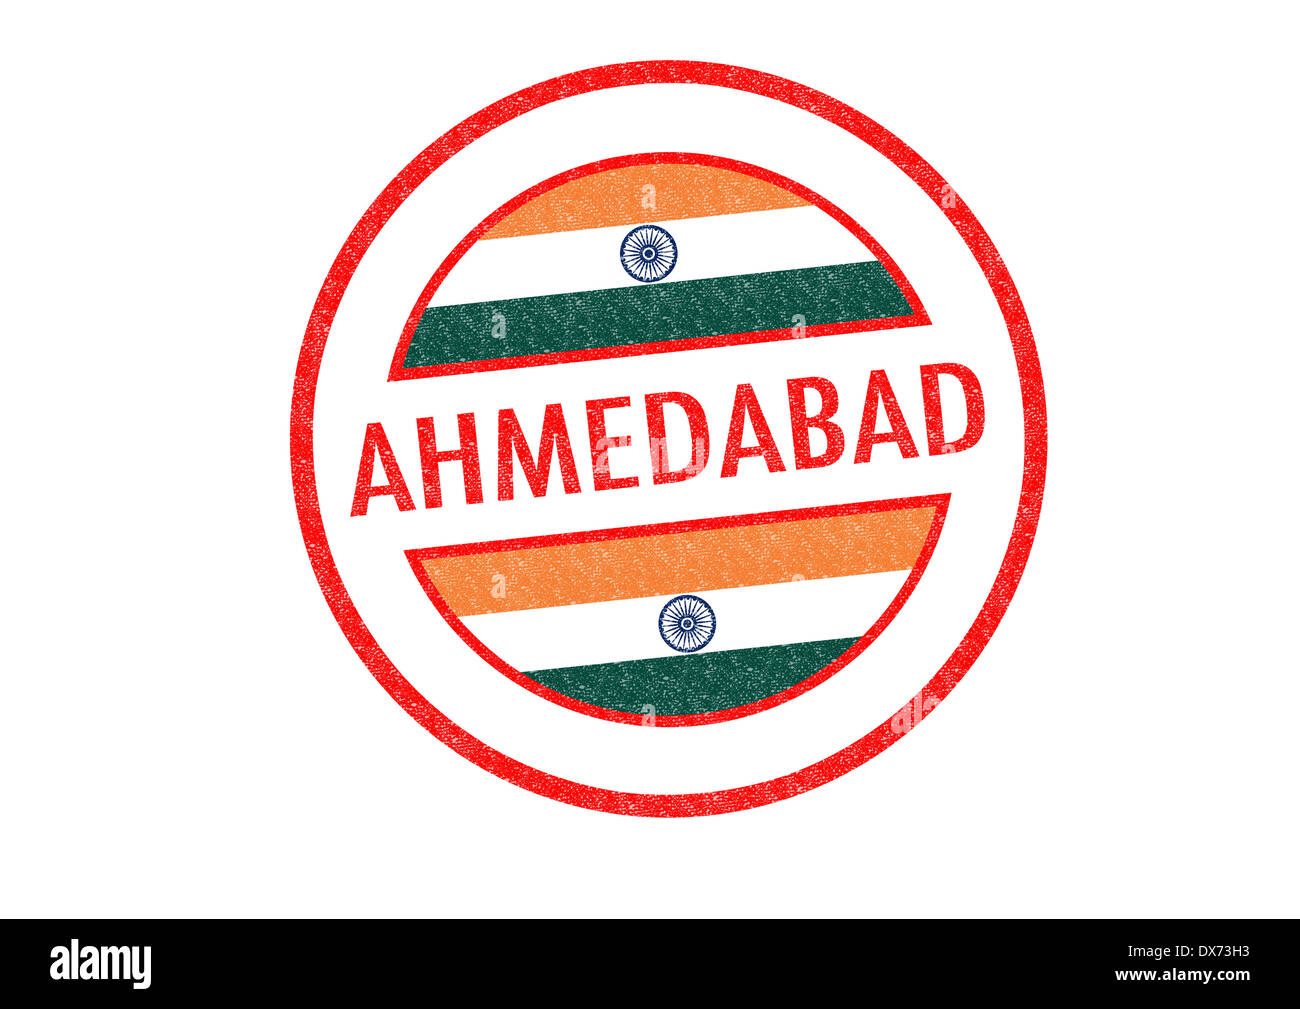 Passport-style AHMEDABAD (India) rubber stamp over a white background. - Stock Image